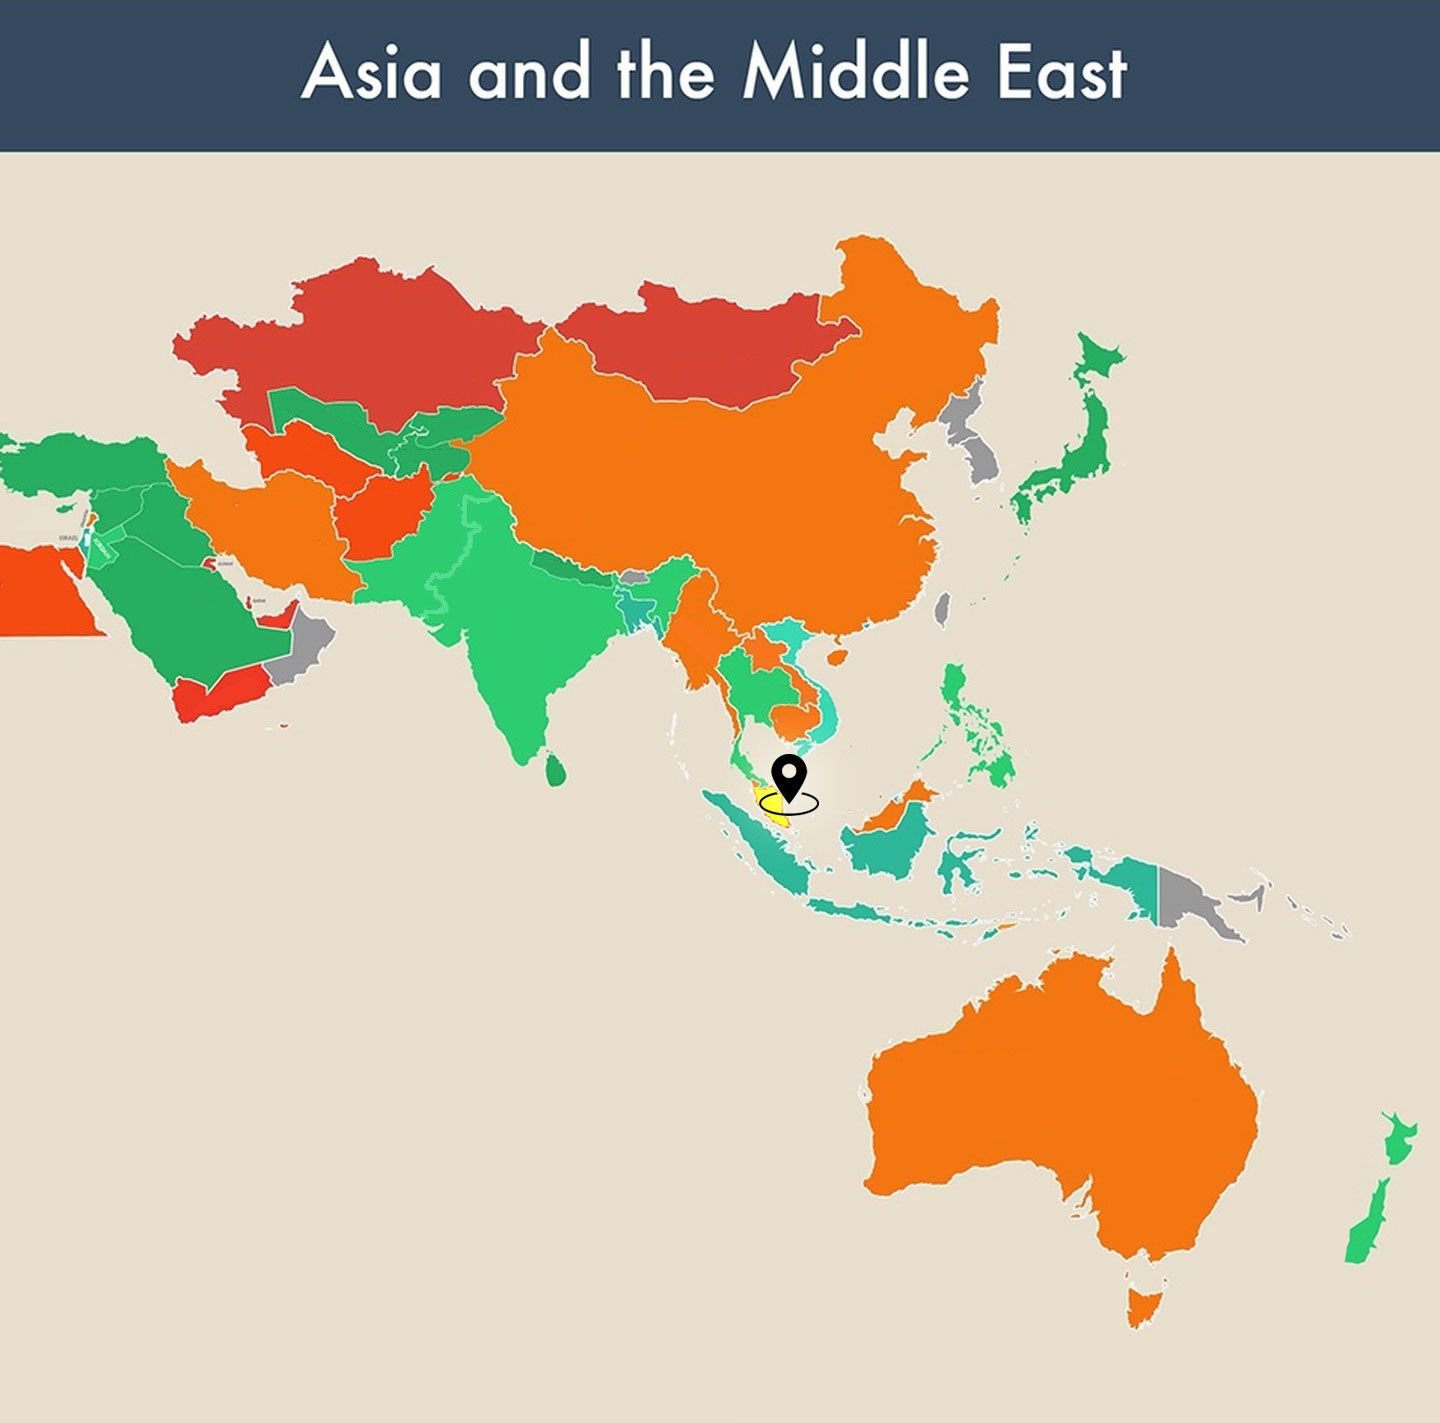 countries of the world empty map - malaysia image